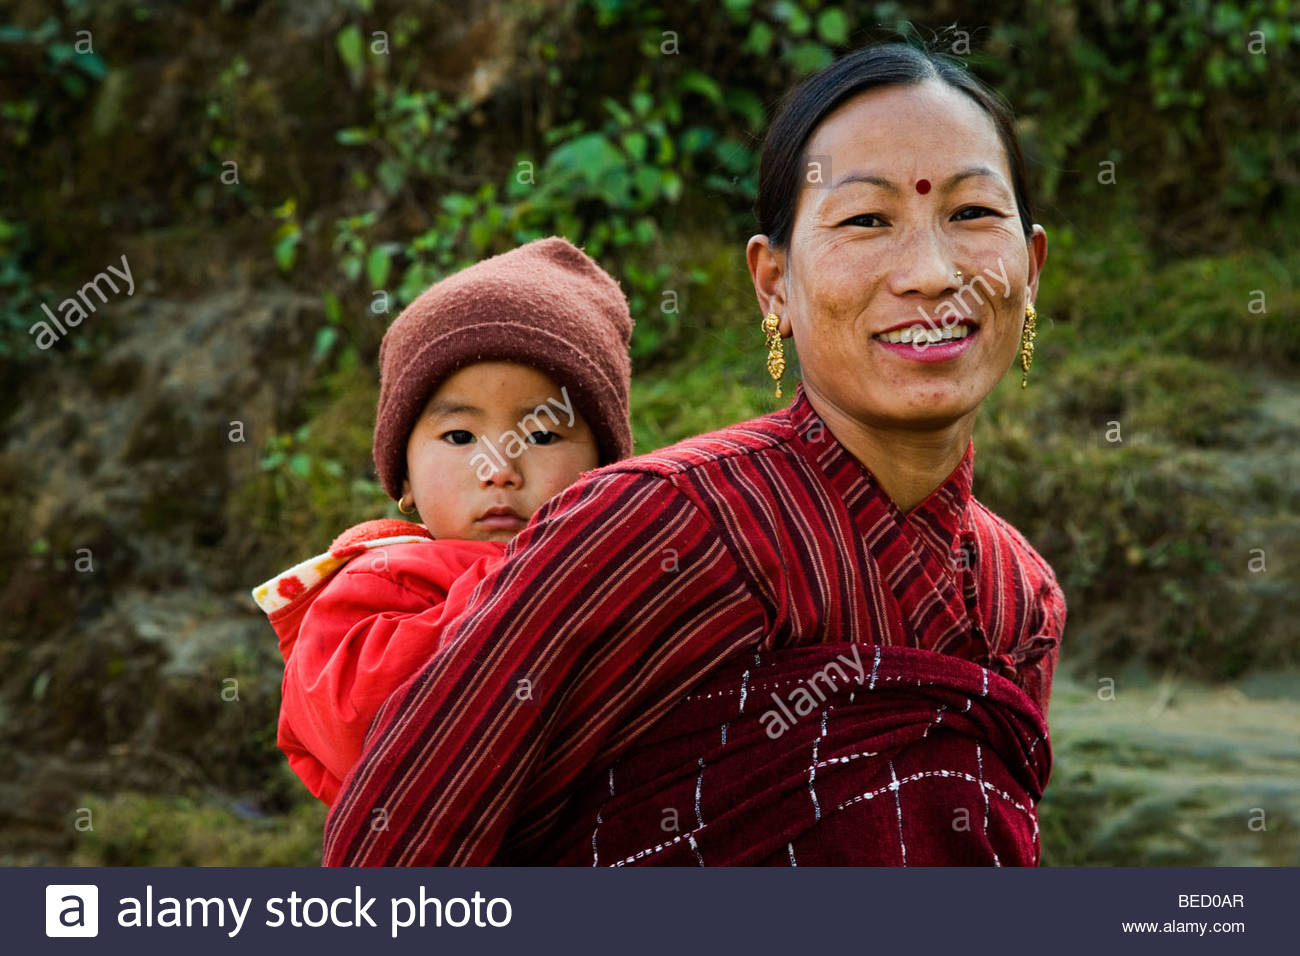 Nepalese mother and baby stock photos nepalese mother and baby nepalese woman and child stock image ccuart Gallery